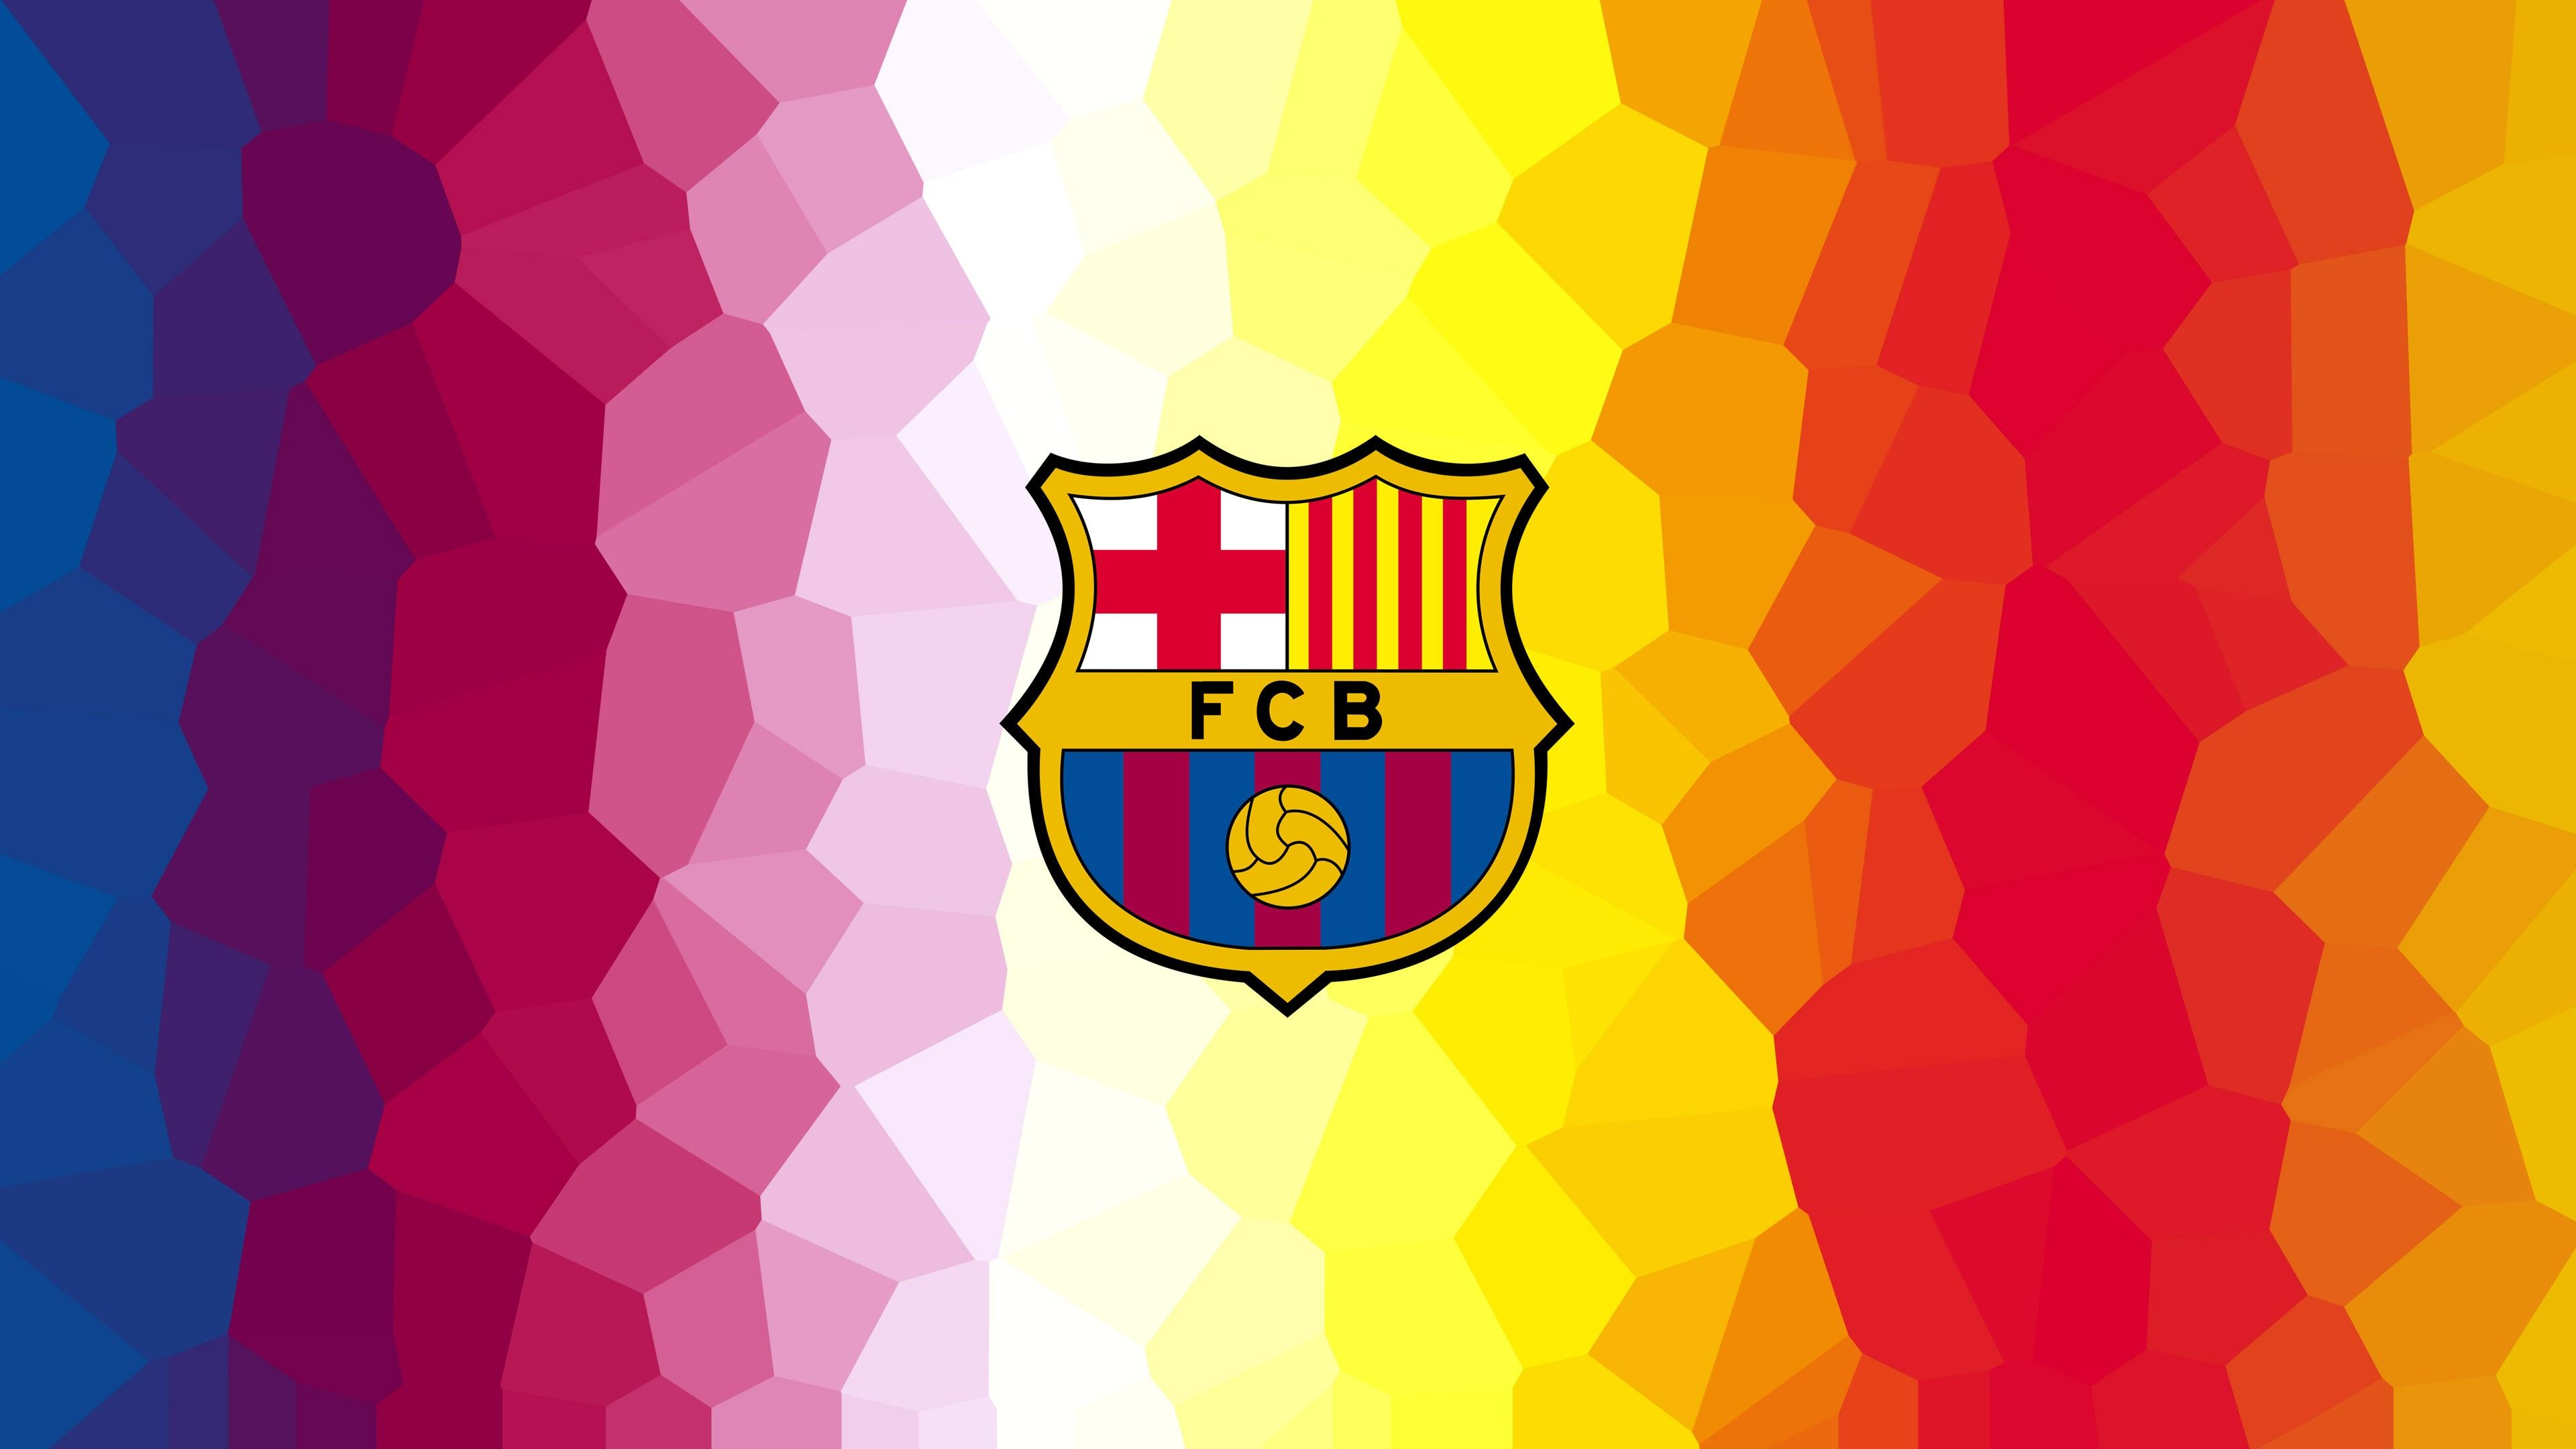 FCB FC Barcelona 4K Wallpapers | HD Wallpapers